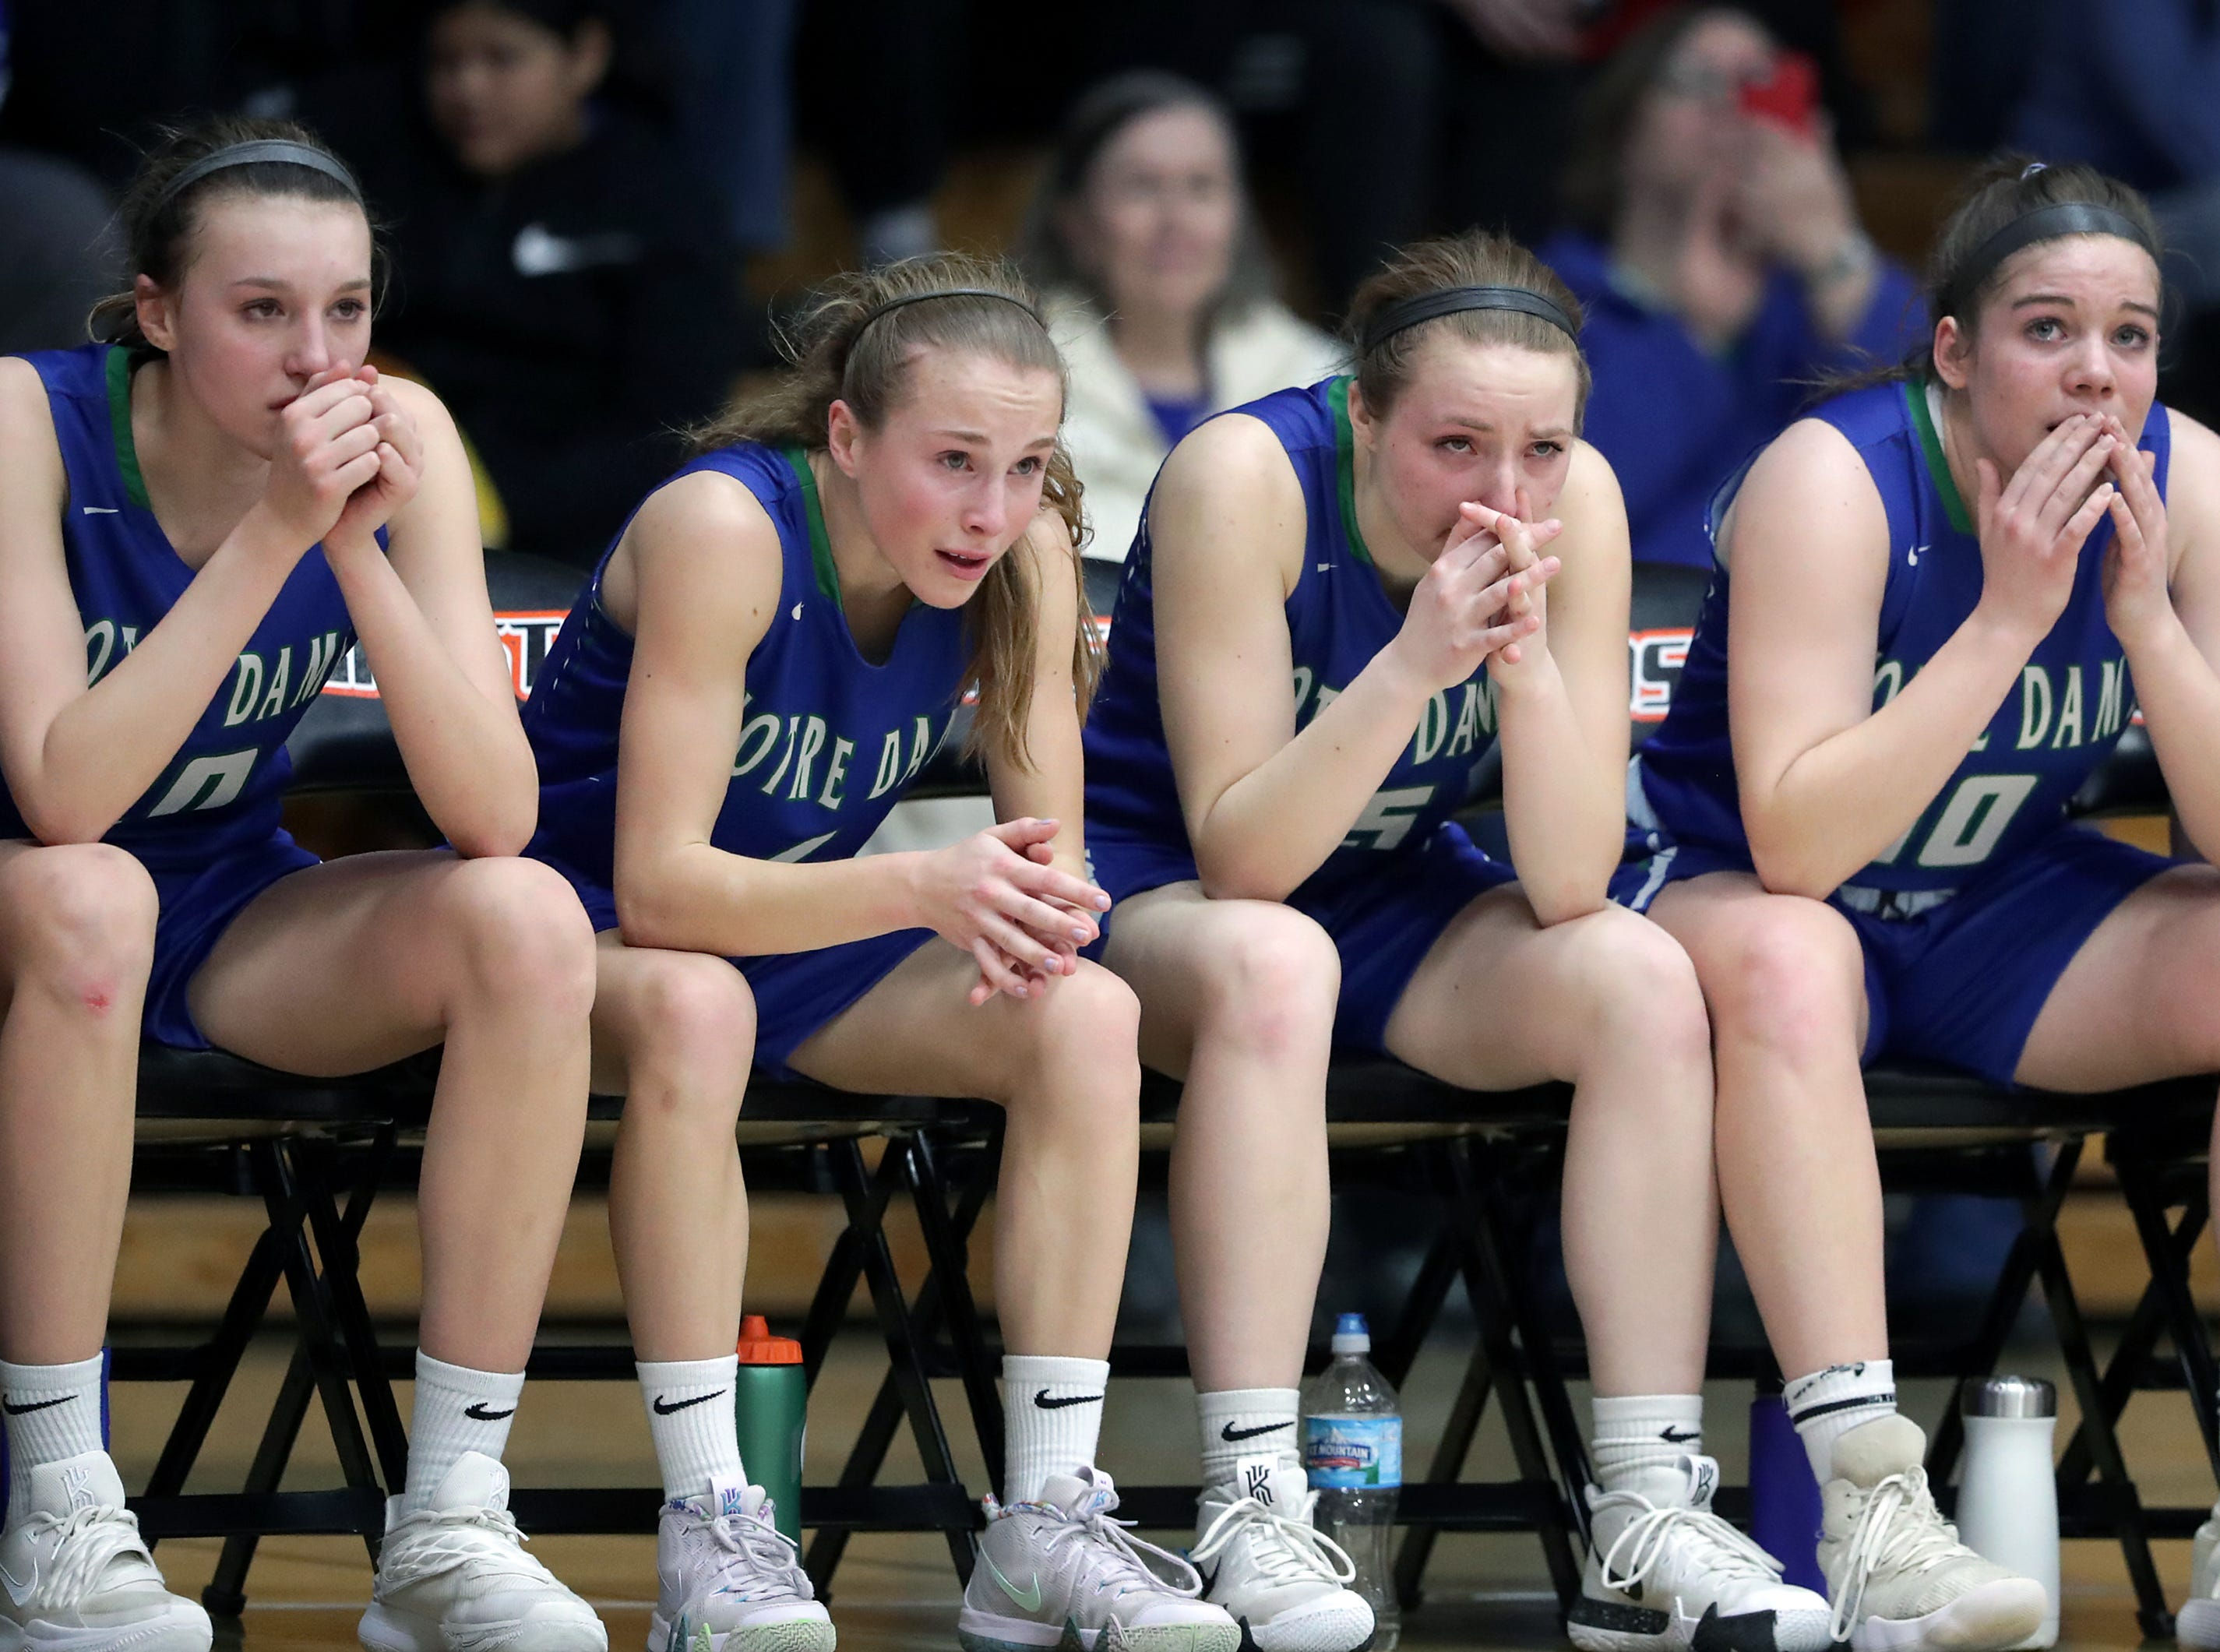 Notre Dame High School players react in the final seconds against Beaver Dam High School during their WIAA Division 2 girls basketball sectional final on Saturday, March 2, 2019, at Kaukauna High School in Kaukauna, Wis. Beaver Dam defeated Notre Dame 68 to 40.